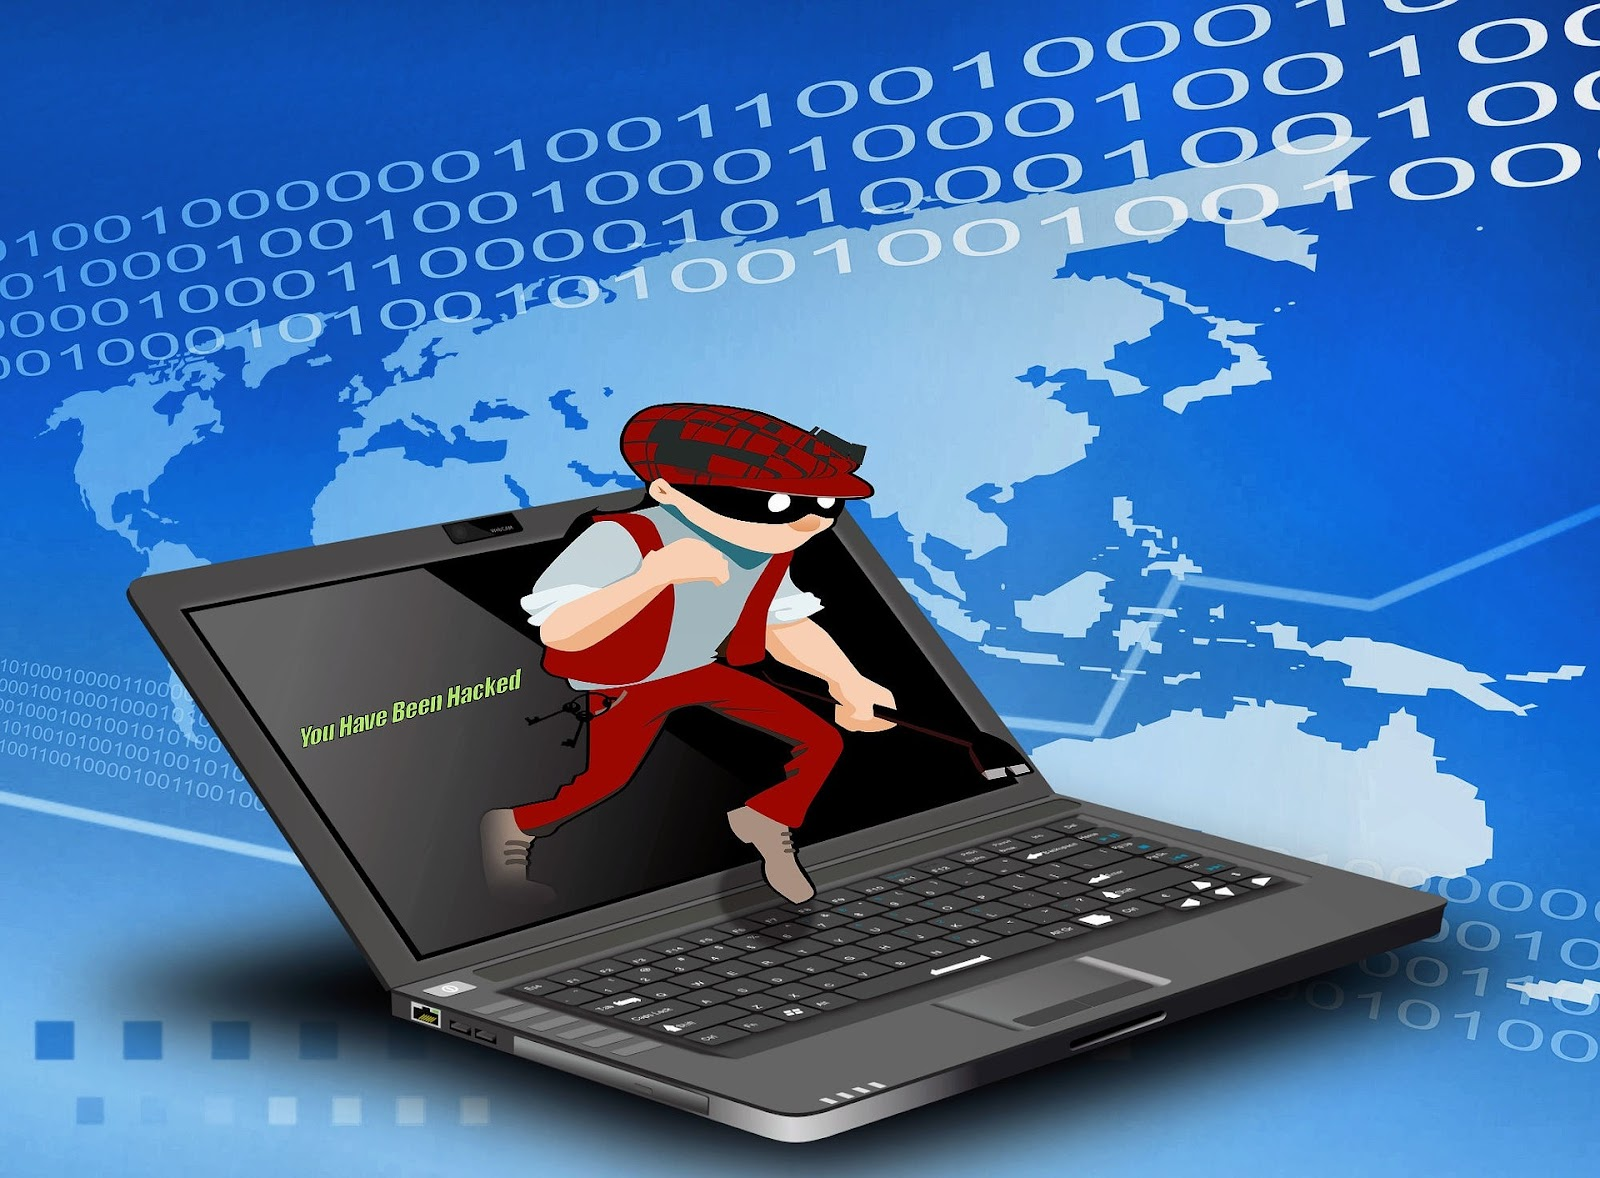 What Is an Advanced Persistent Threat (APT)?